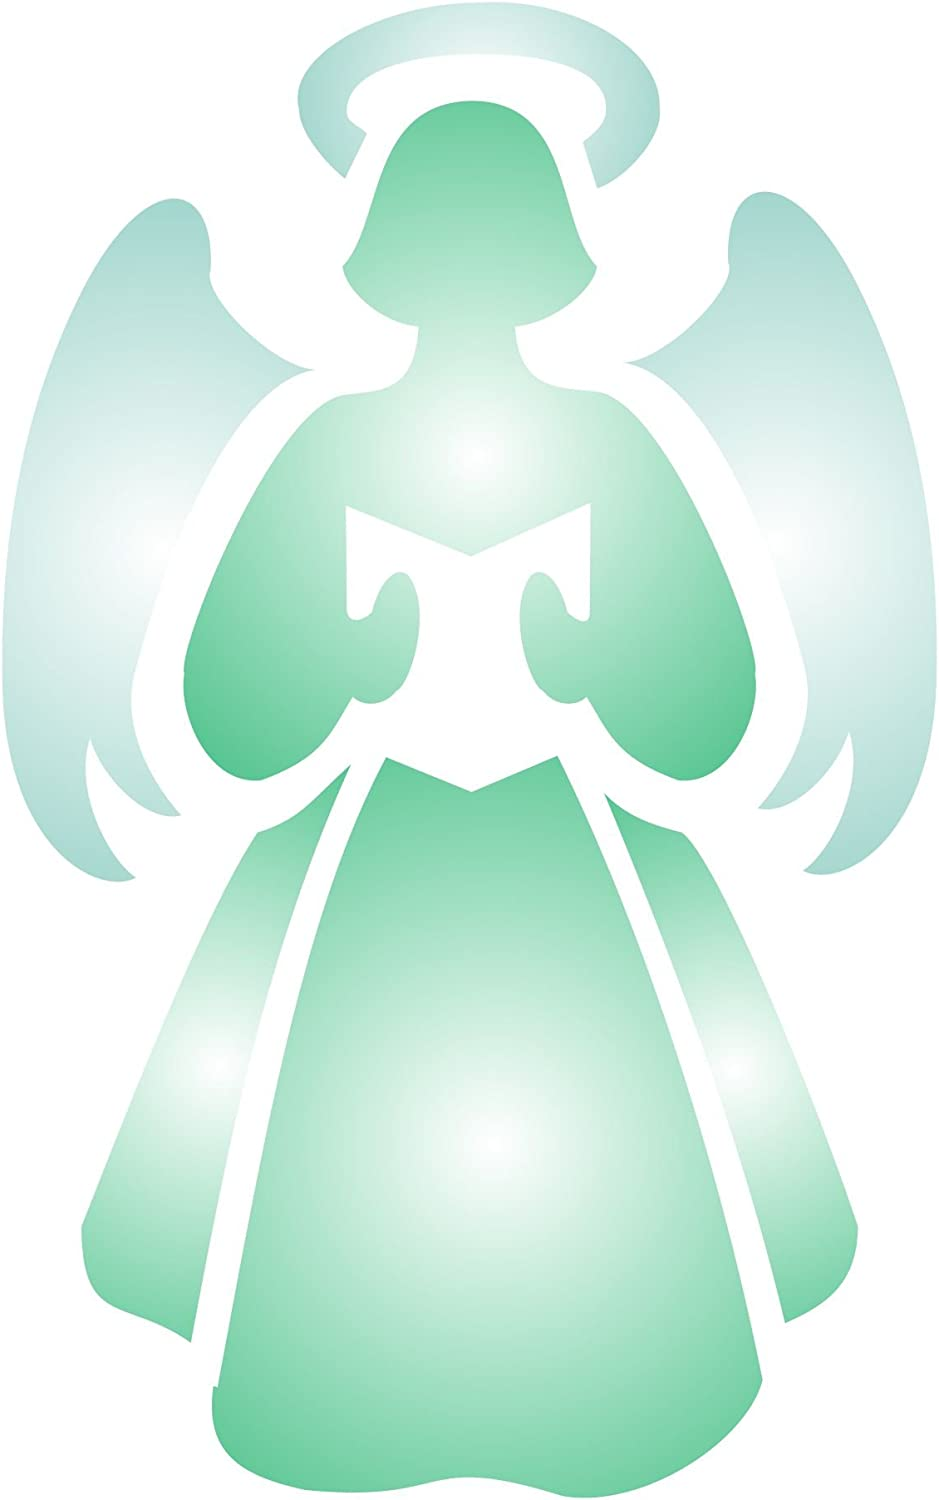 Christmas Angel Stencil, 3.25 x 5 inch (S) - Scrapbooking Decor & Card Stencils for Painting Template